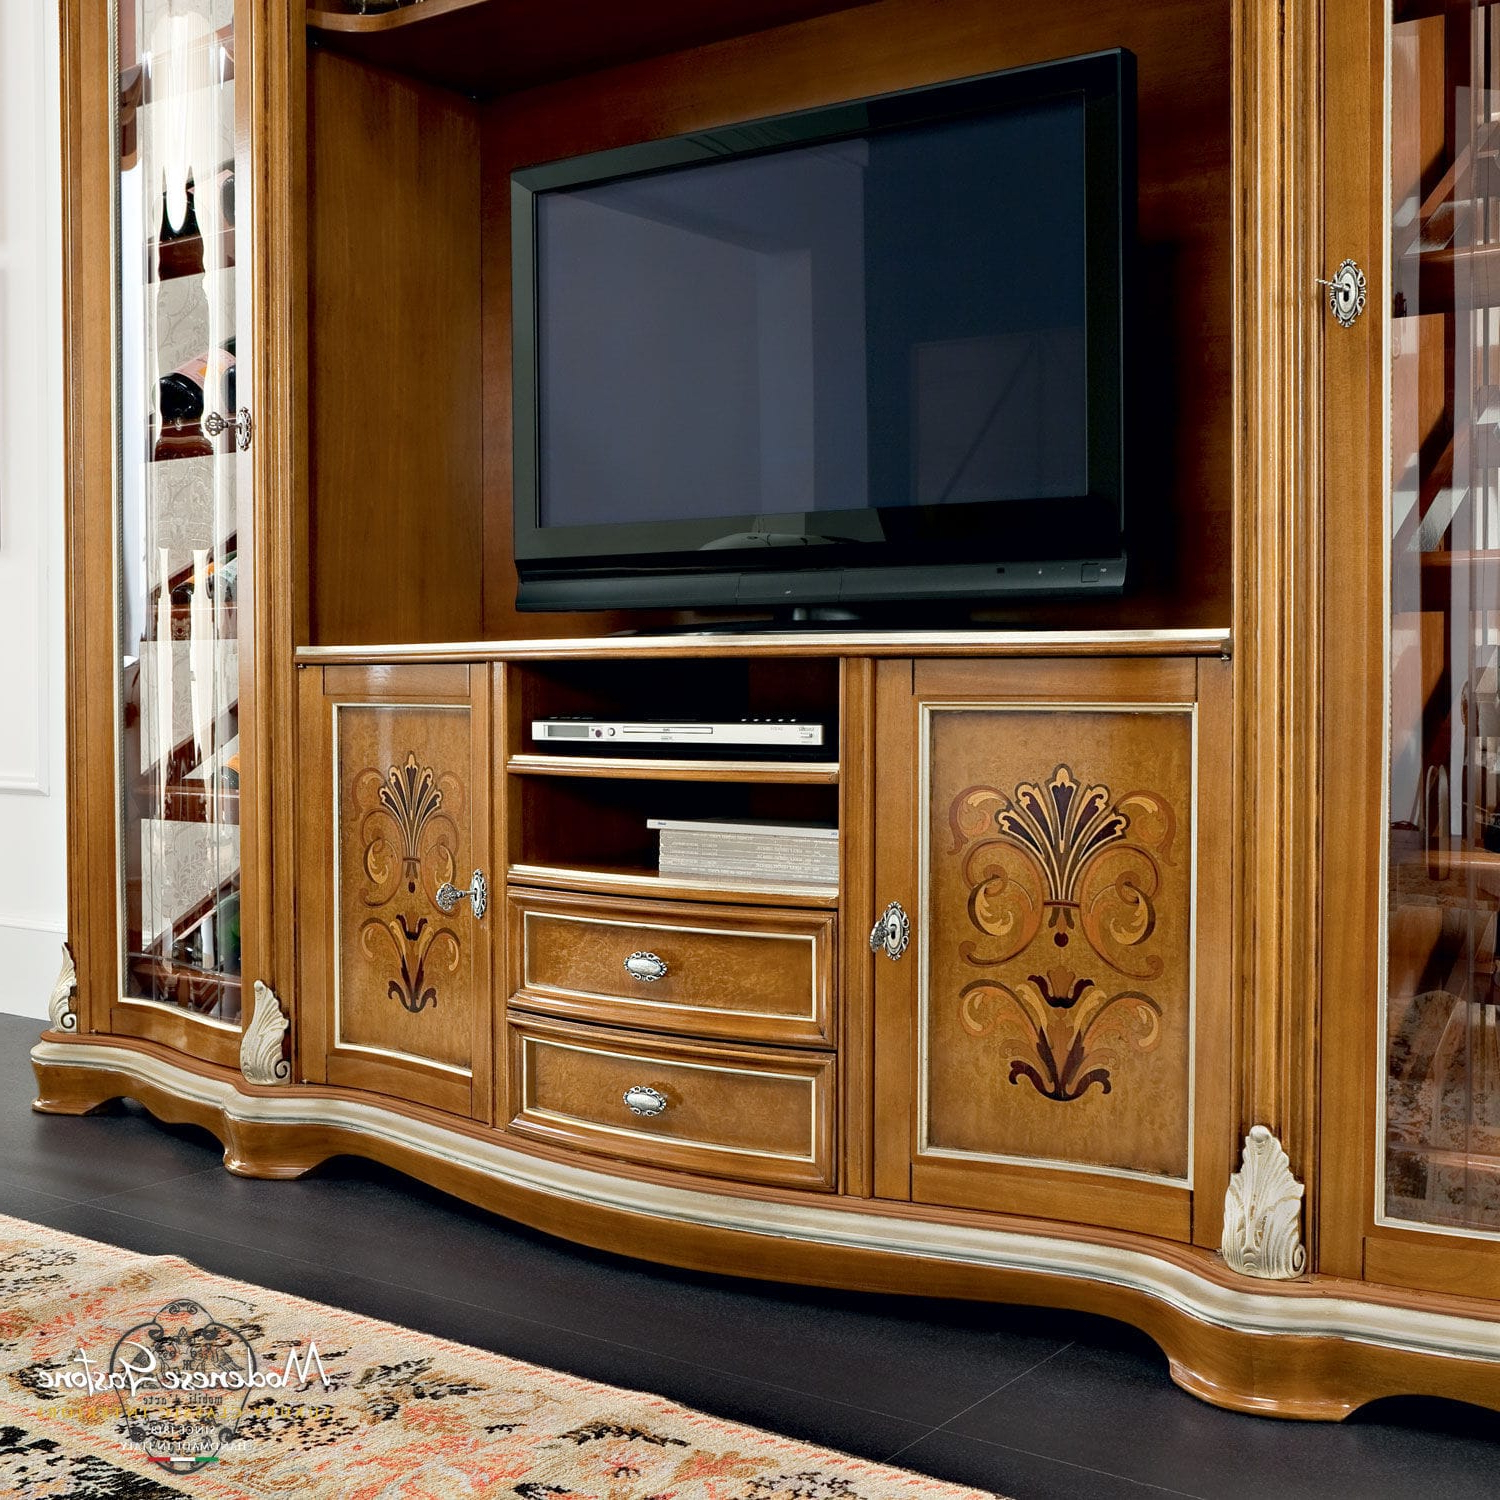 Classic Tv Cabinets Regarding Recent Classic Tv Cabinet / Solid Wood – Bella Vita – Modenese Gastone (Gallery 14 of 20)